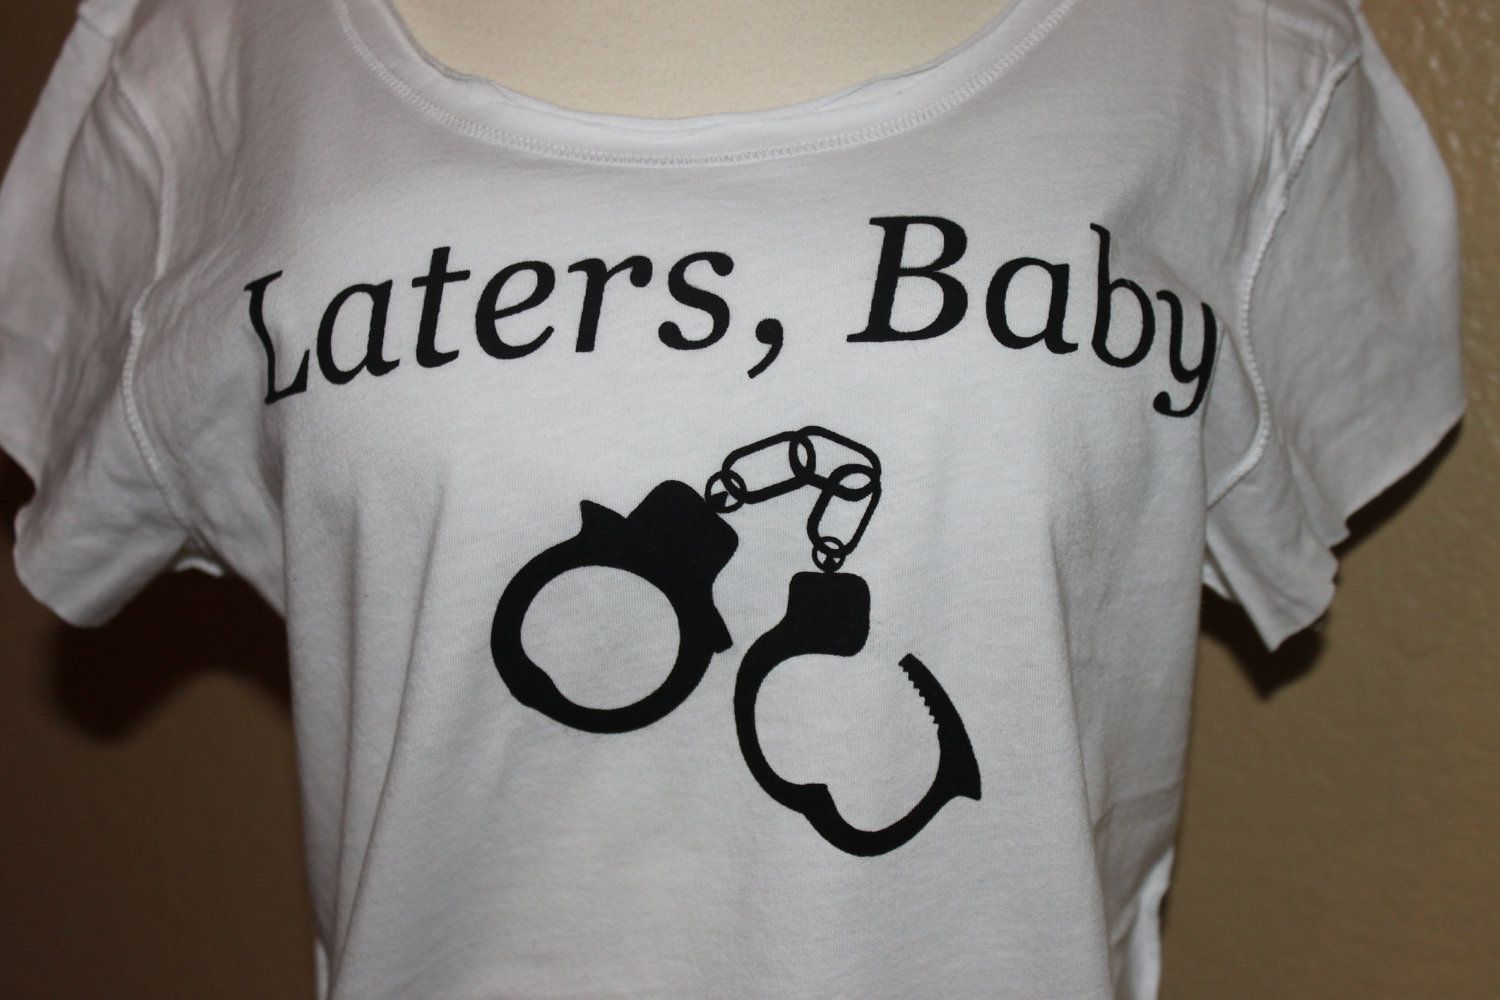 Laters Baby Shirt